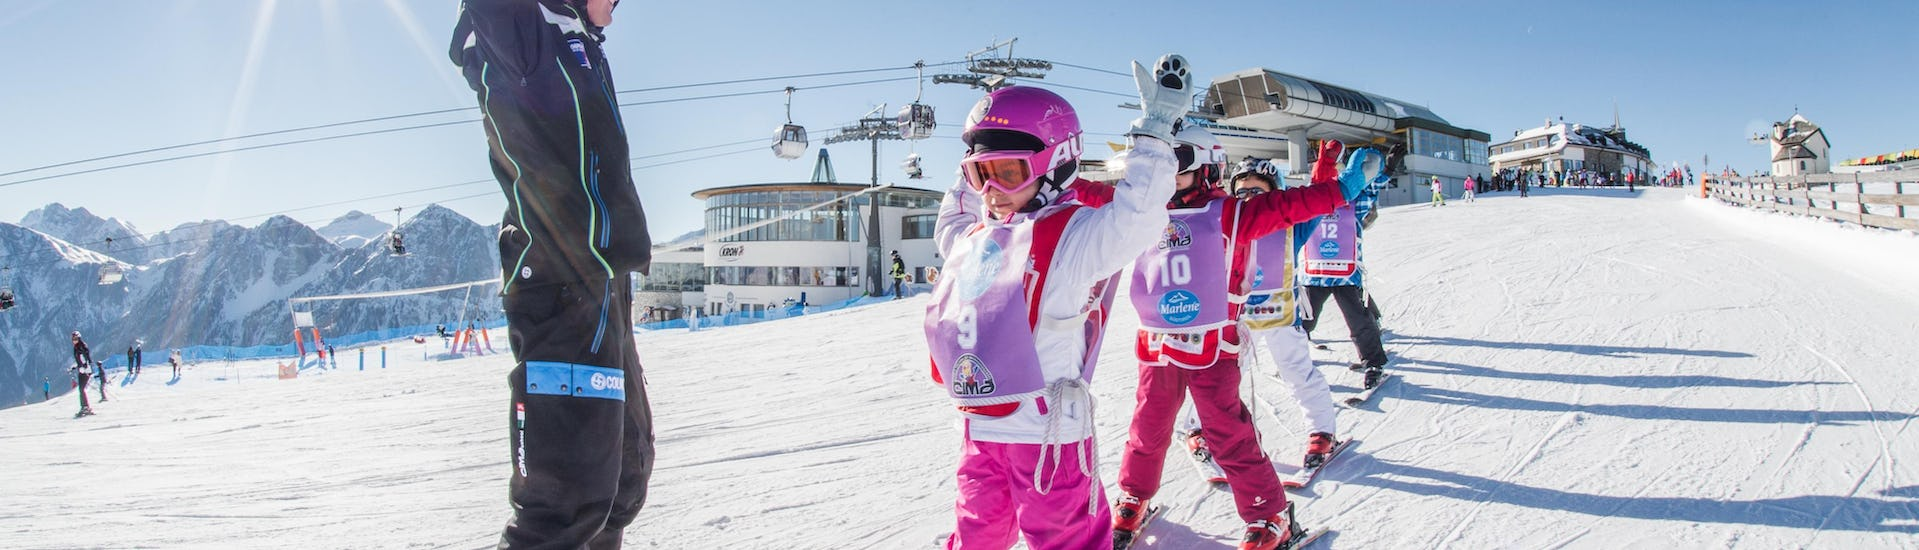 Ski Lessons for Kids (4-12 years) - Weekend - All Levels